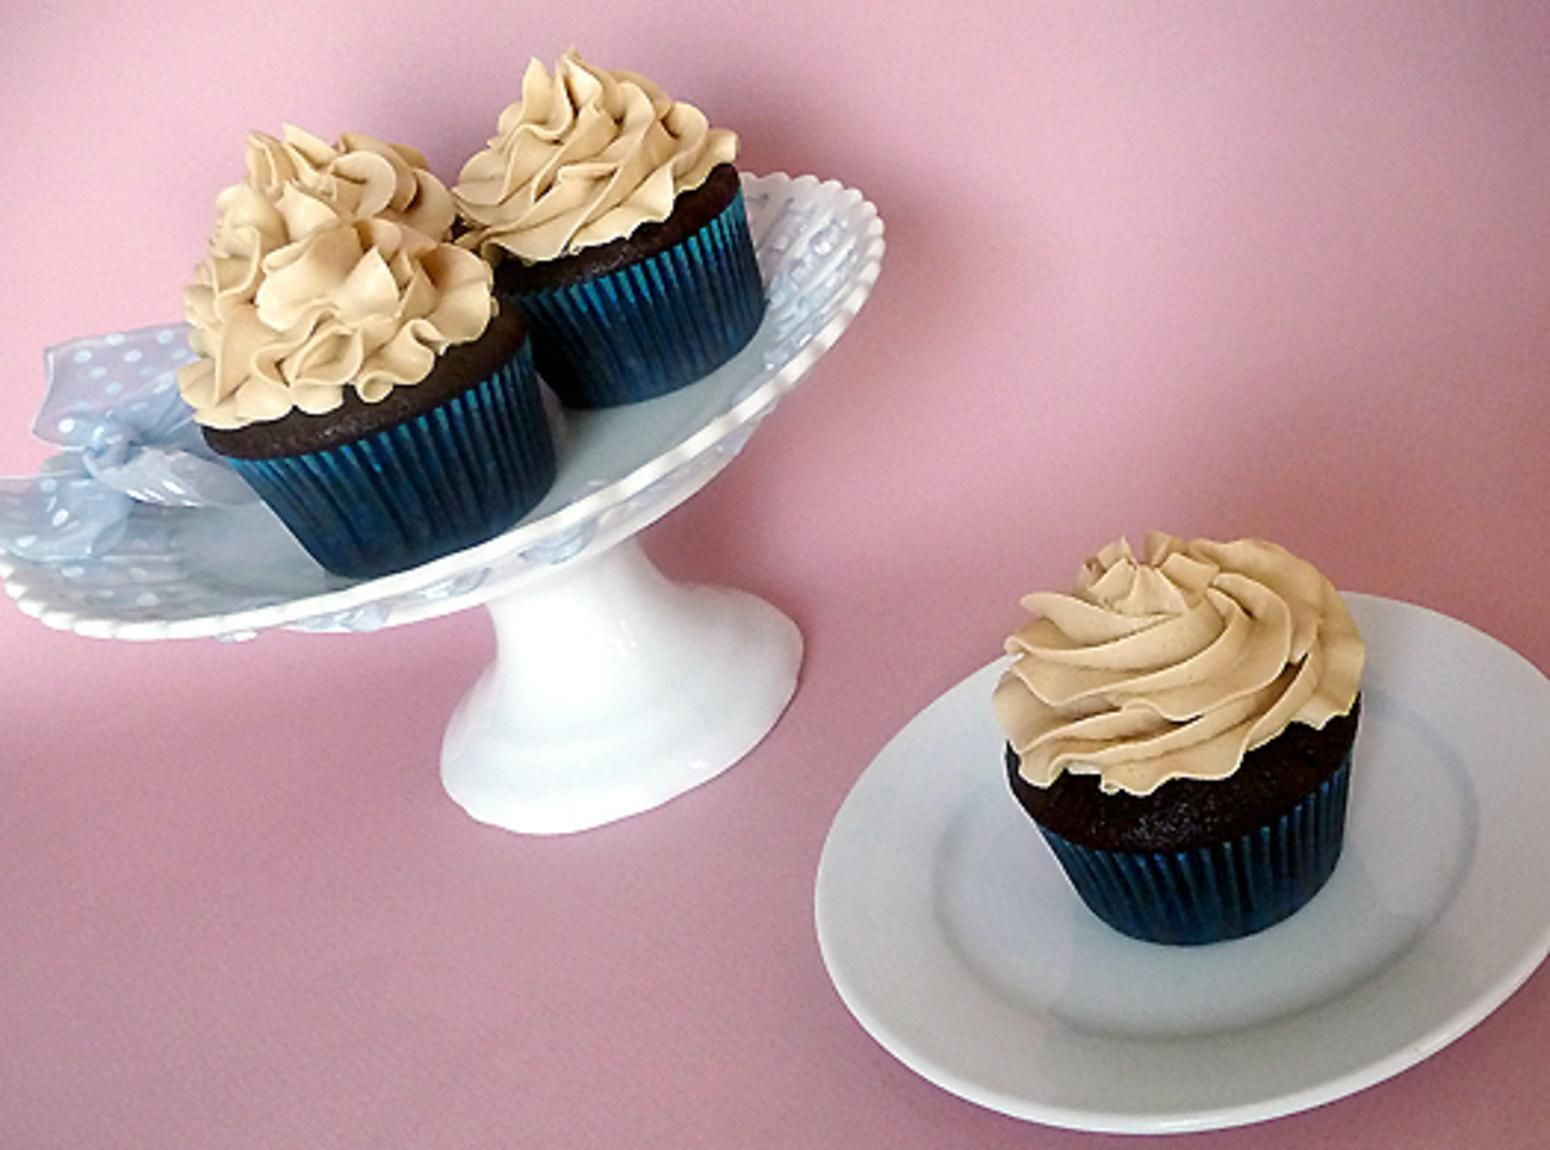 Mocha Cupcakes with Espresso Buttercream Frosting Homemade Food Junkie #espressoathome This #Mocha Cupcakes with Espresso Buttercream Frosting Recipe  Just A Pinch Recipes is a better for our dinner made with wholesome ingredients! Dairy, #Healthy, Gluten Free, grain free and paleo too!, Our #mocha cupcakes with espresso Recipes very delicious, we can try to make this #Mocha Chocolate Chip Espresso Cupcakes  The Cake Merchant recipes at home.Read More About This Recipe  Click here #espressoathome